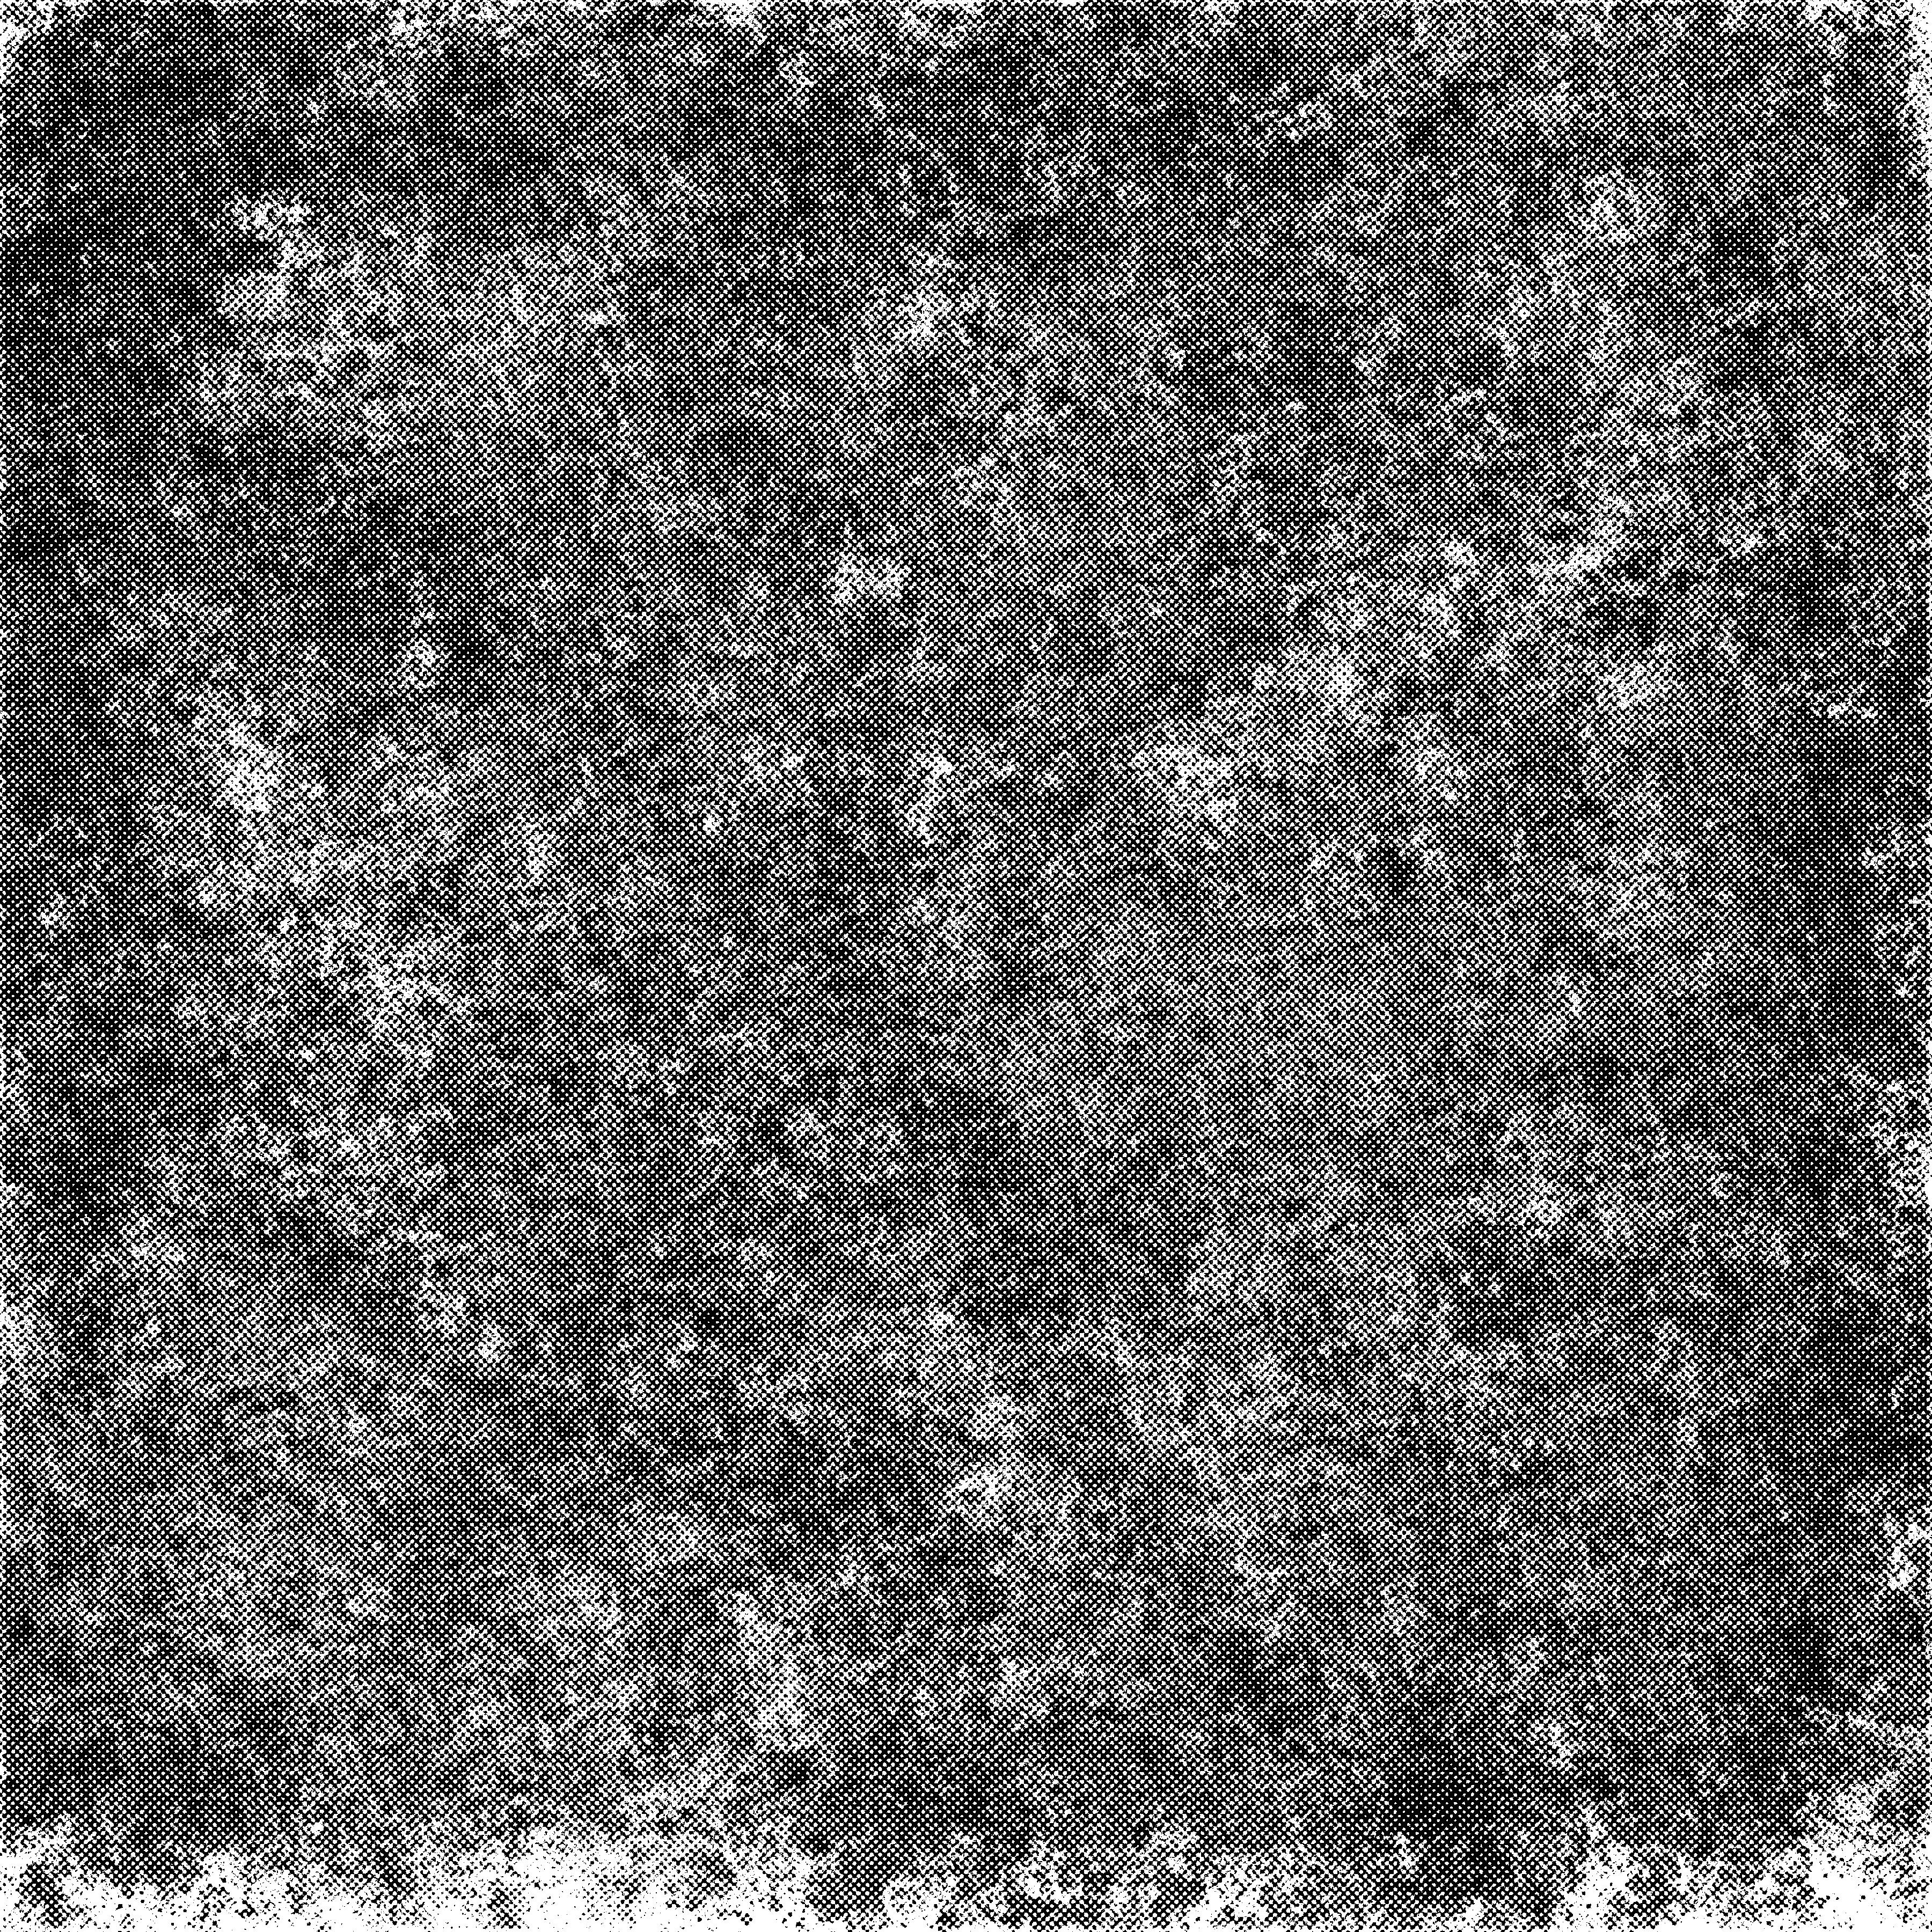 Grunge texture overlay png. Freebie commercial use halftone